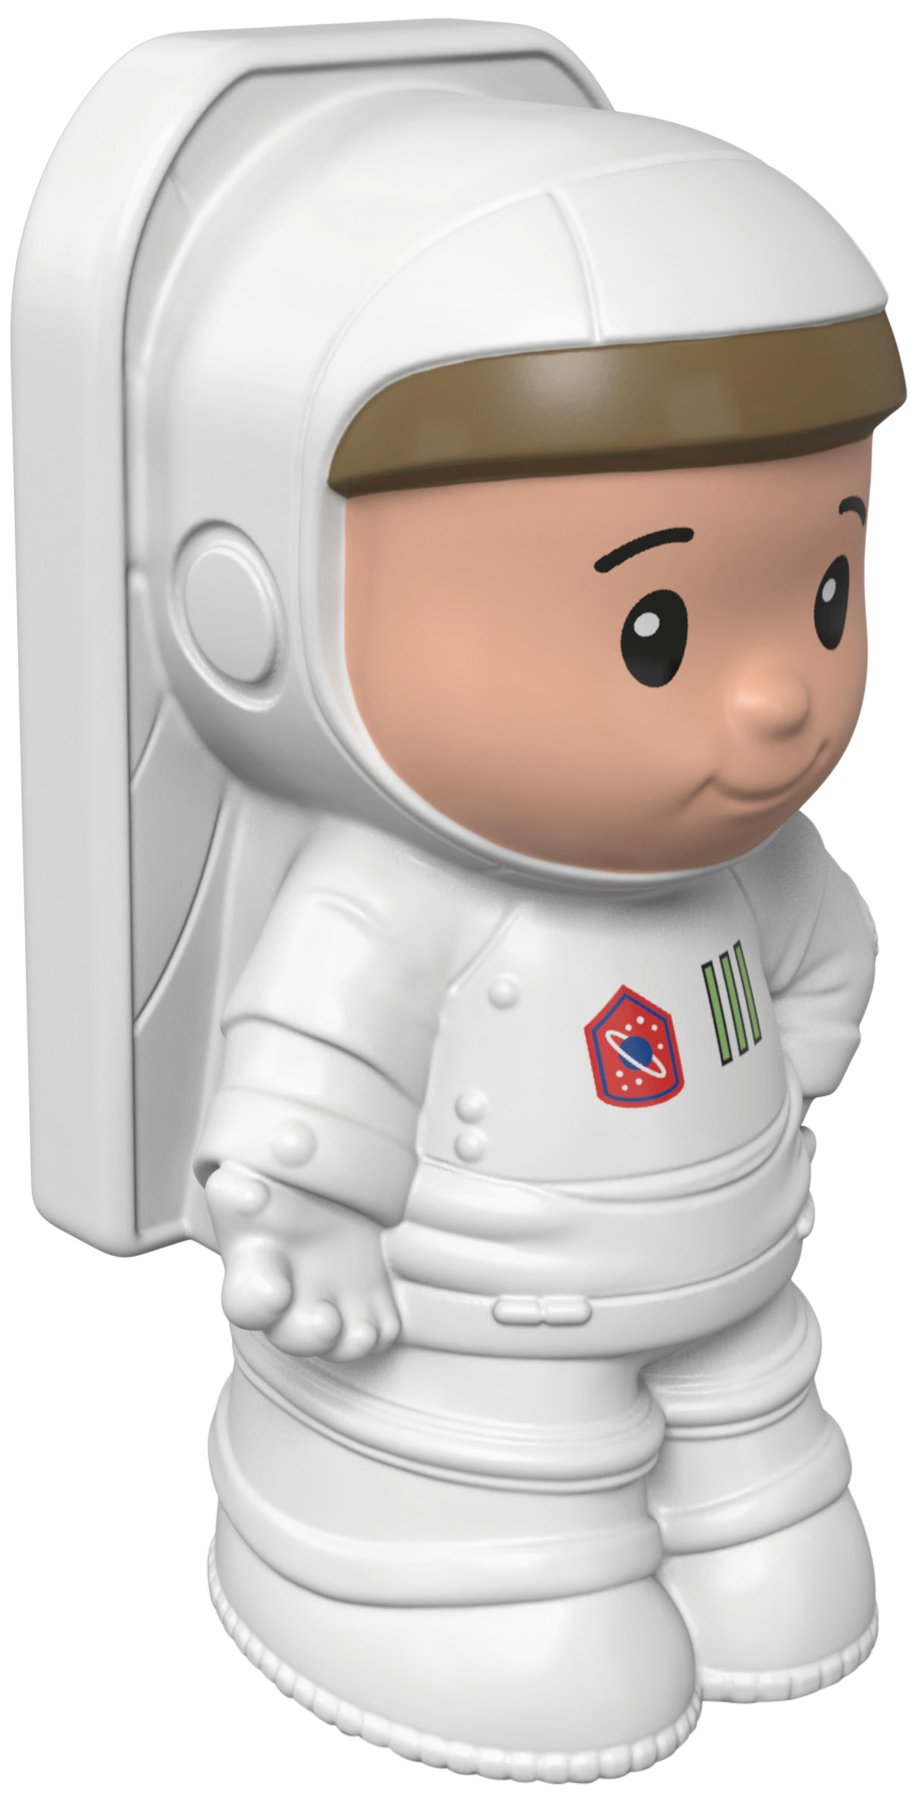 Fisher-Price Little People Astronaut